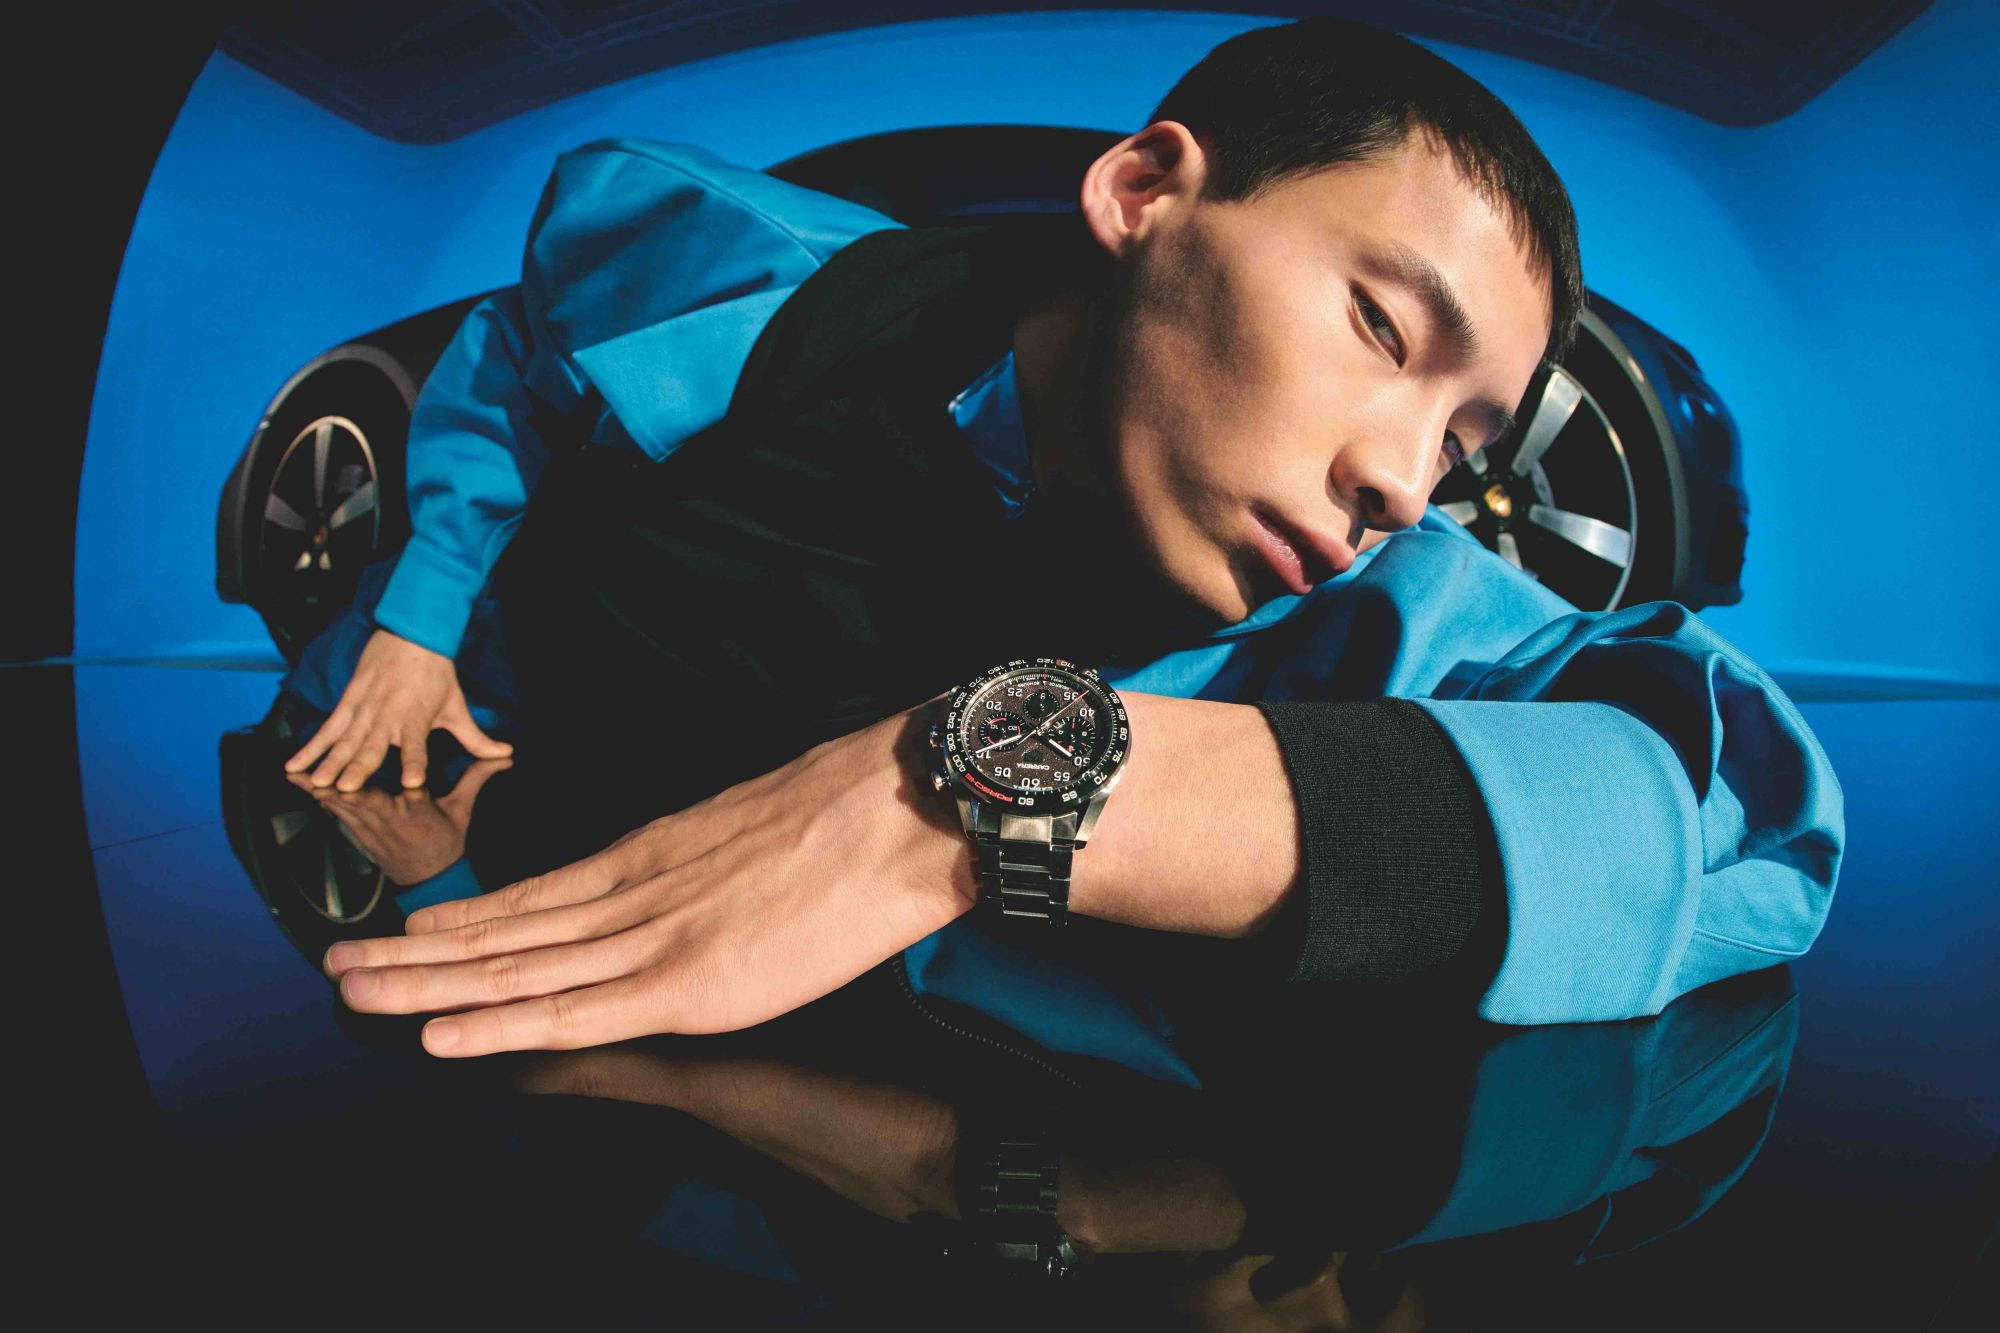 Carrera Unites Tag Heuer and Porsche in New Partnership